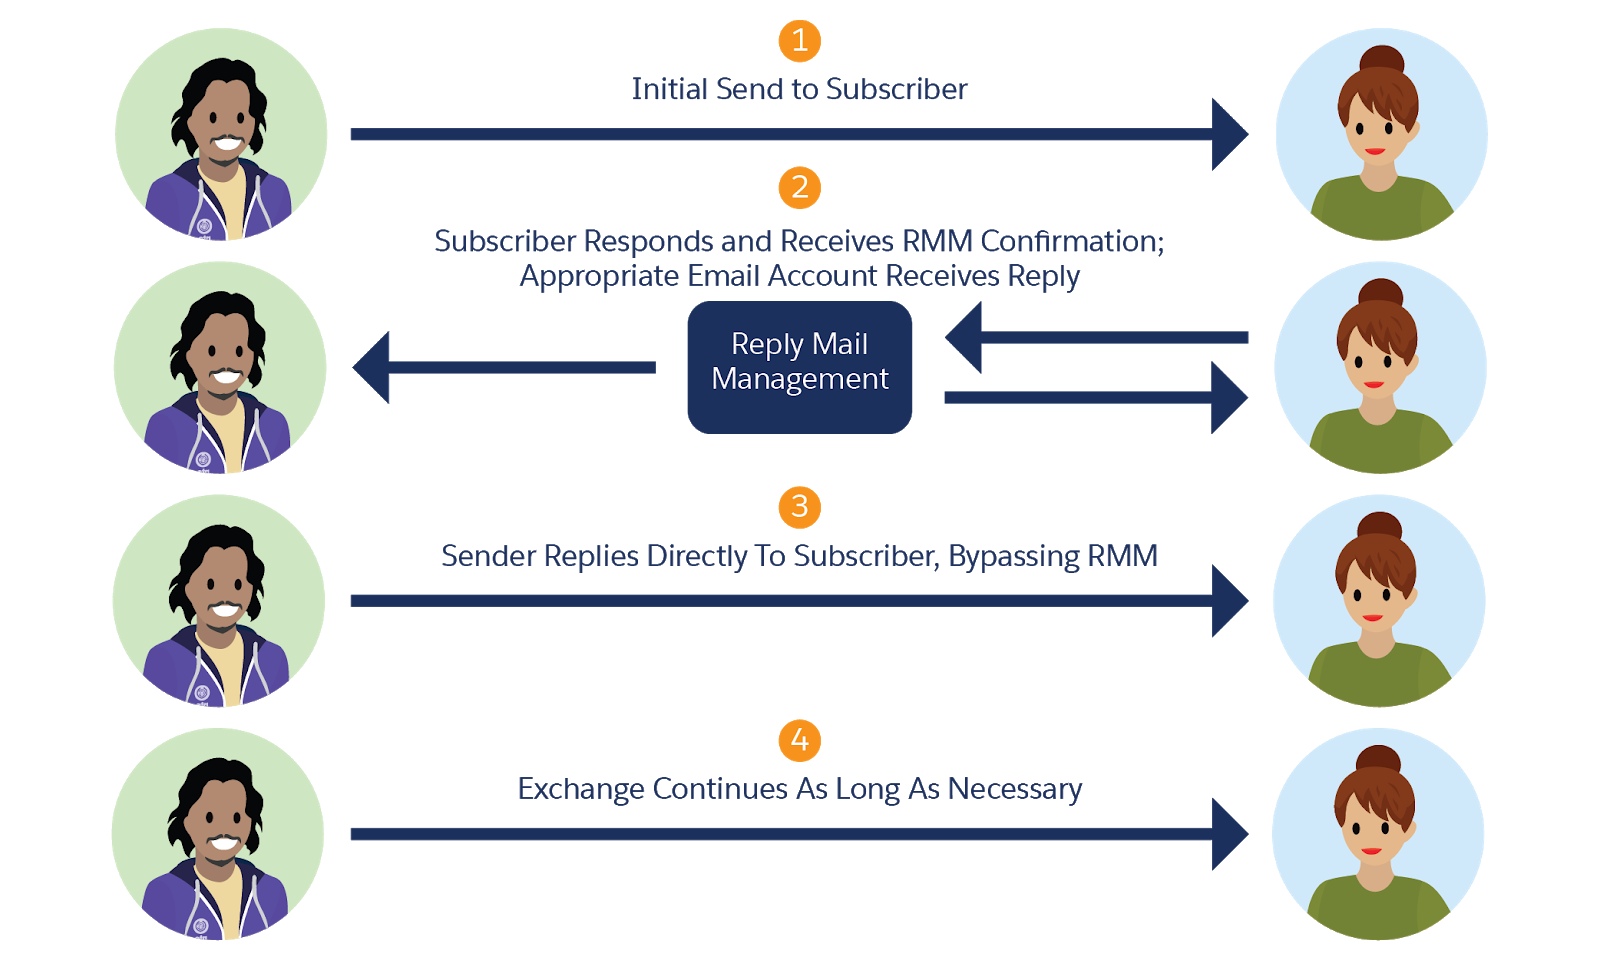 RMM process from initial send to subscriber response, RMM confirmation, and subsequent replies.